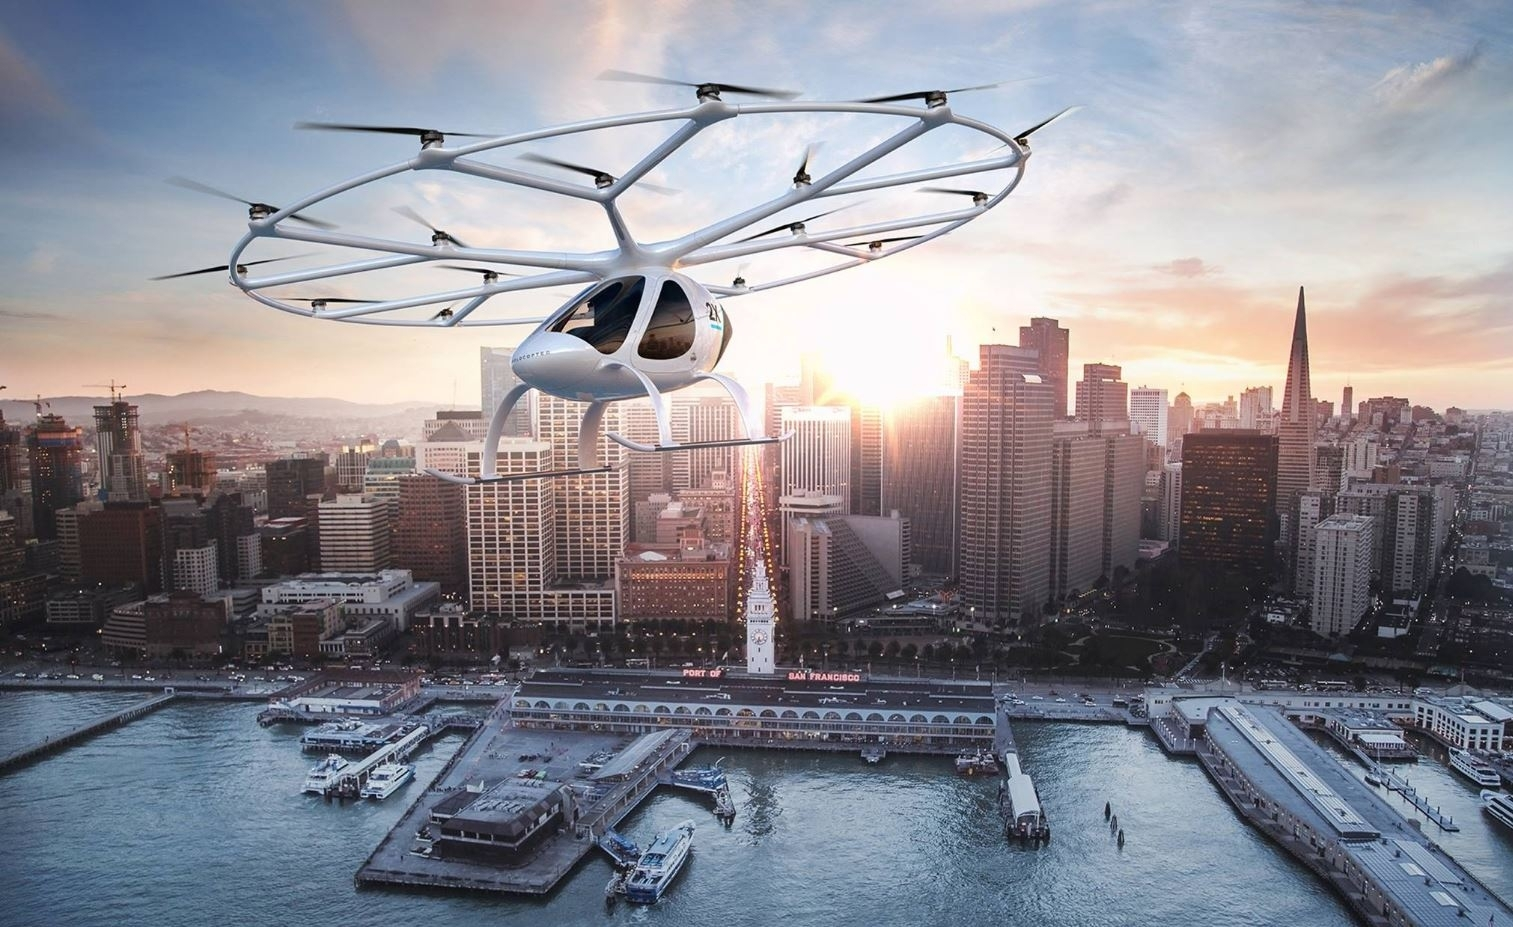 Dubai flying taxi drone Volocopter images